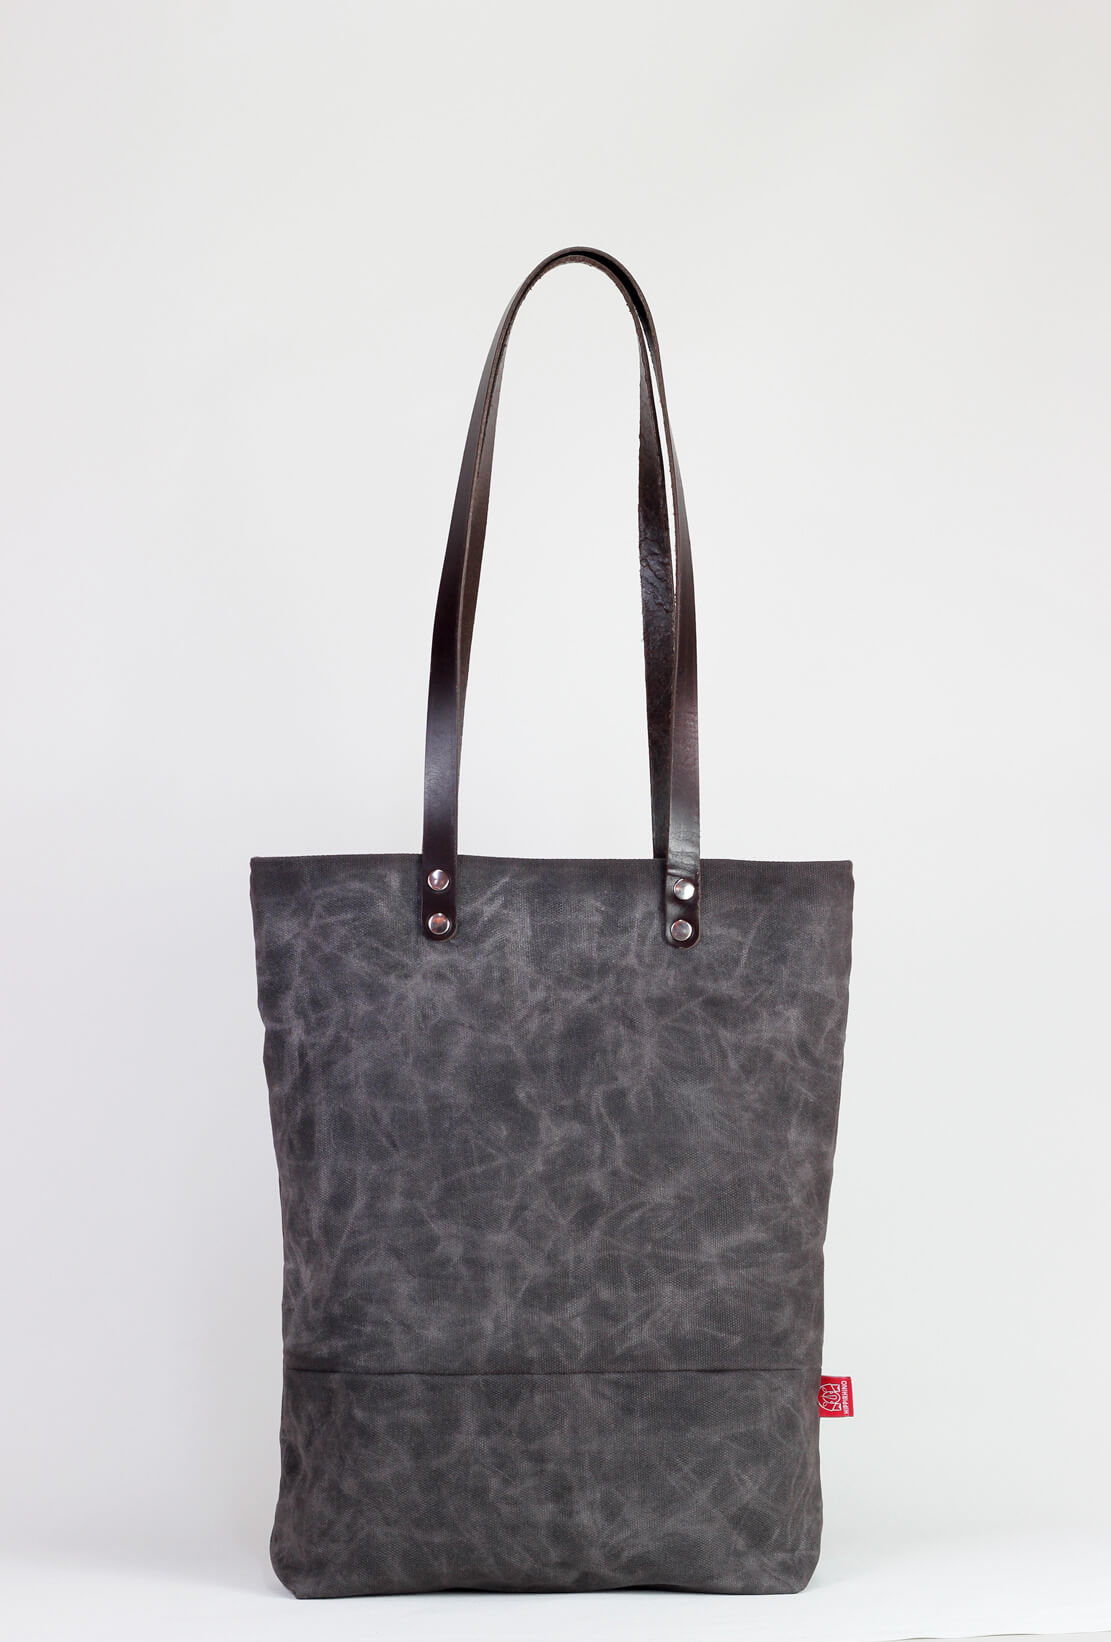 Natural canvas tote with dark brown leather straps